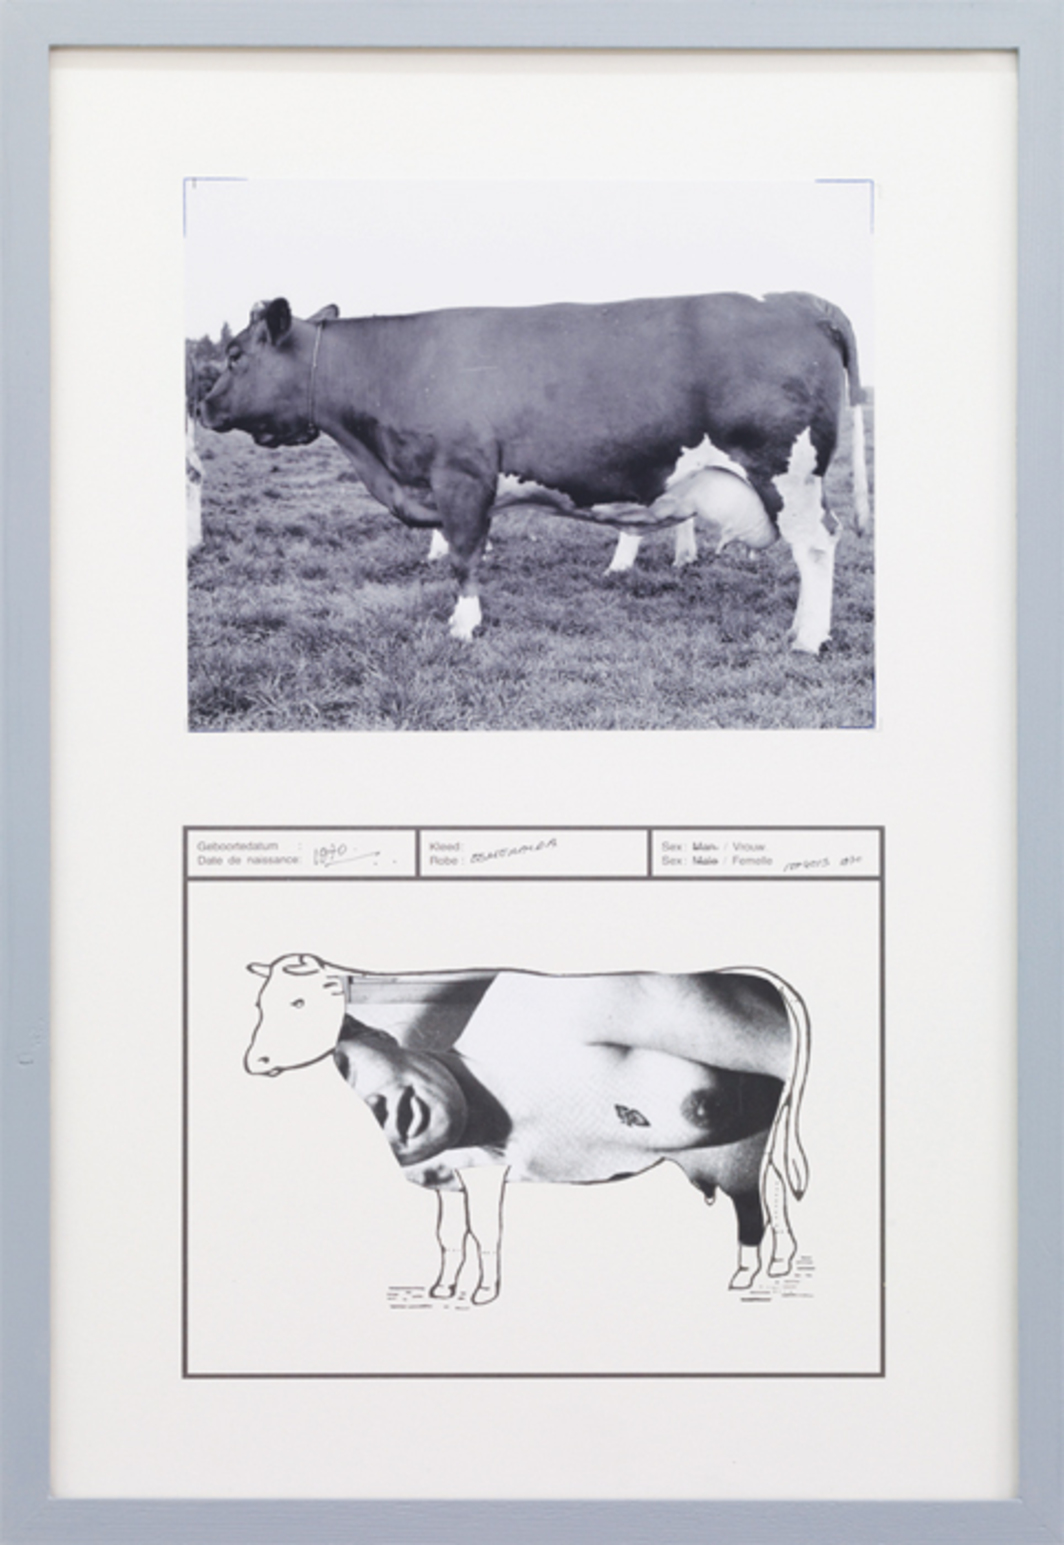 "Jef Geys, Esmeralda, 1970, ink, colored pencil, black-and-white C-print, offset print, 26 x 17 5/8"". From the series ""Passeports de vaches"" (Cow Passports), 1965–."